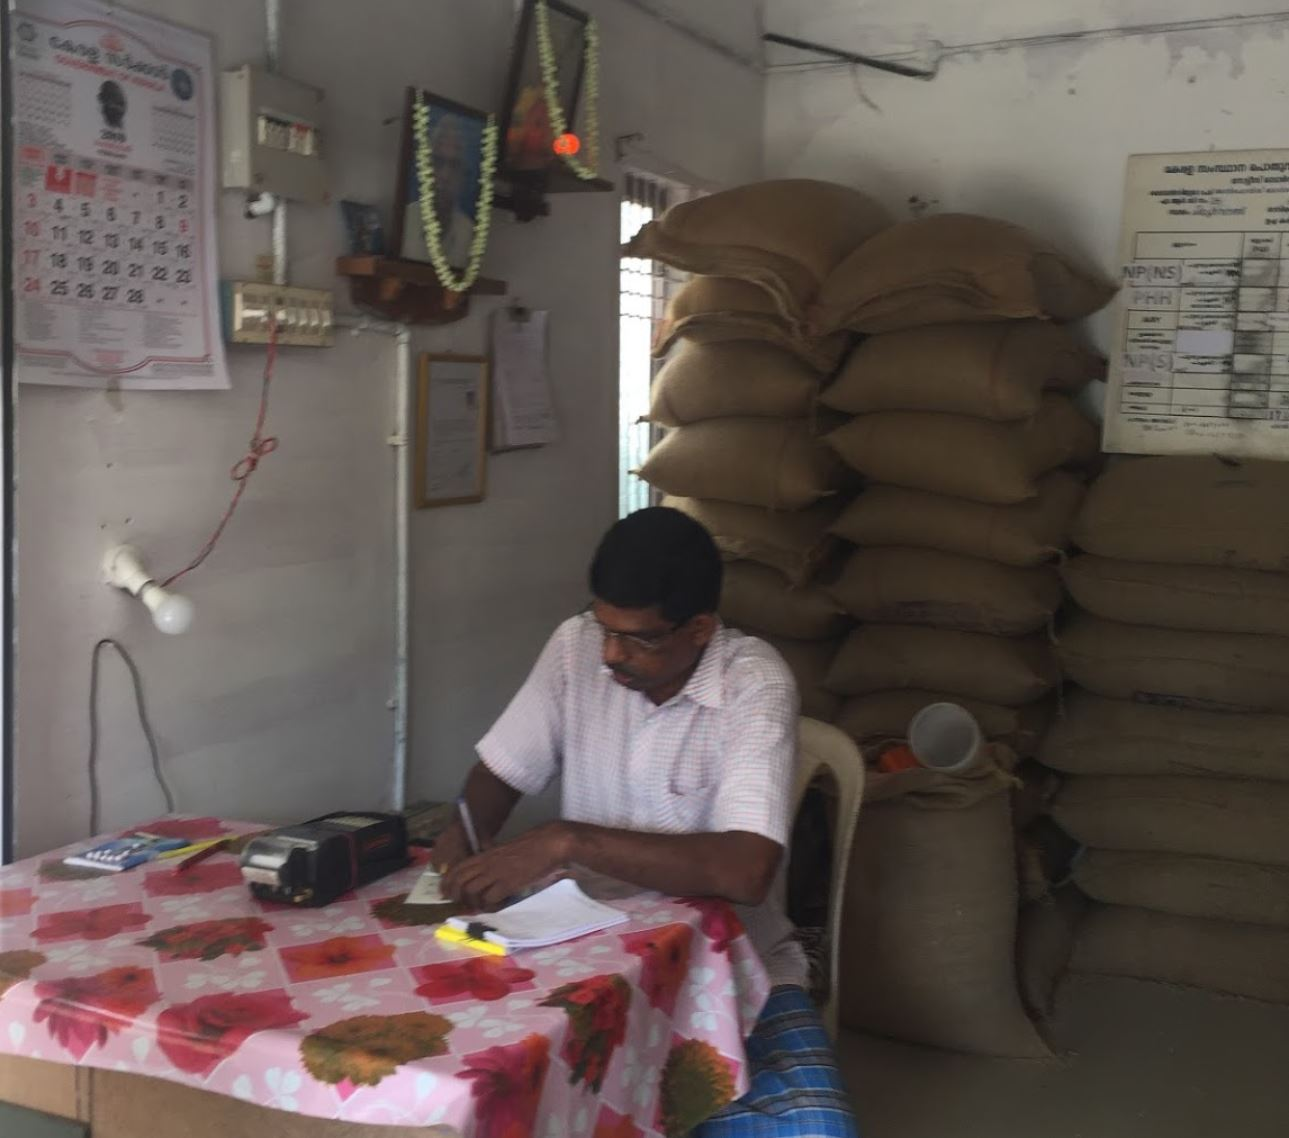 Center waives need for prior approval in Essential Commodities Act